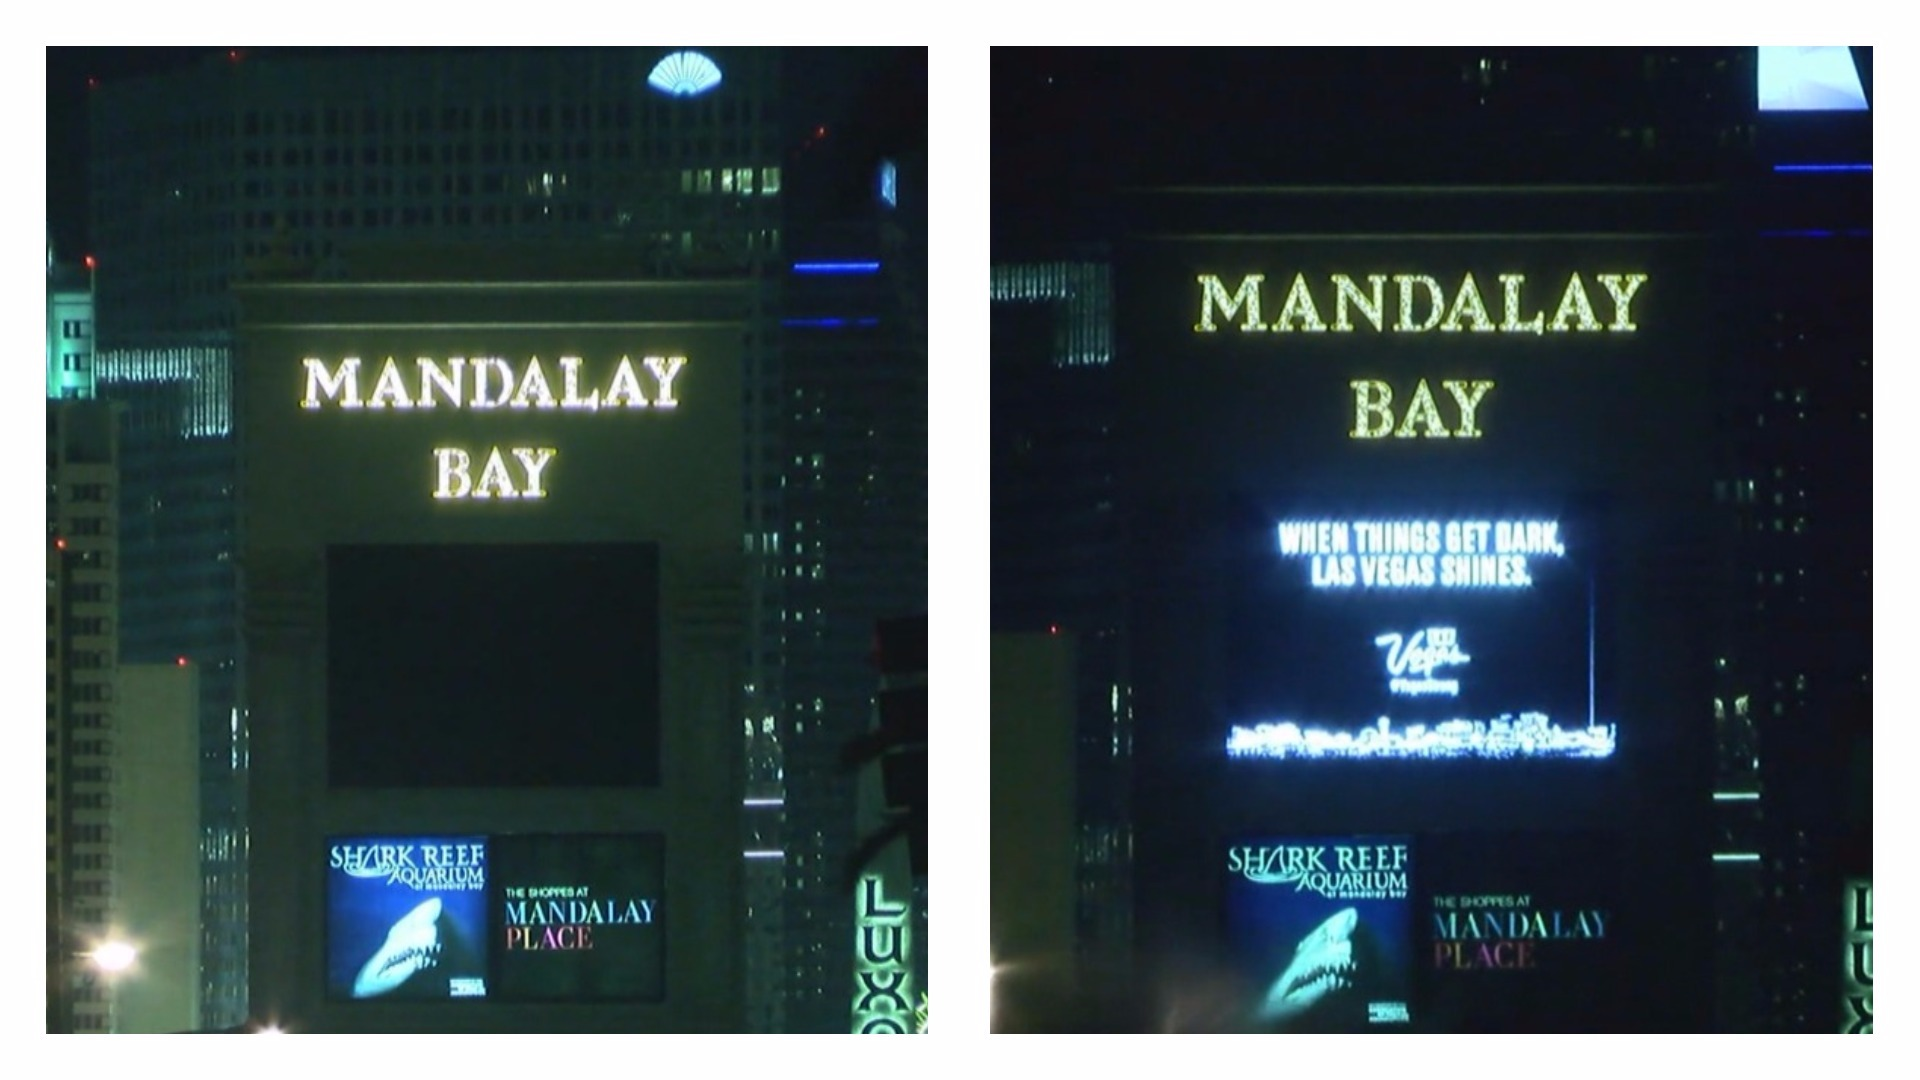 The marquee at Mandalay Bay goes dark (left) and relights Sunday, Oct. 8, 2017, to remember the victims of the Route 91 Harvest Festival massacre. (Corwin Hall/KSNV)